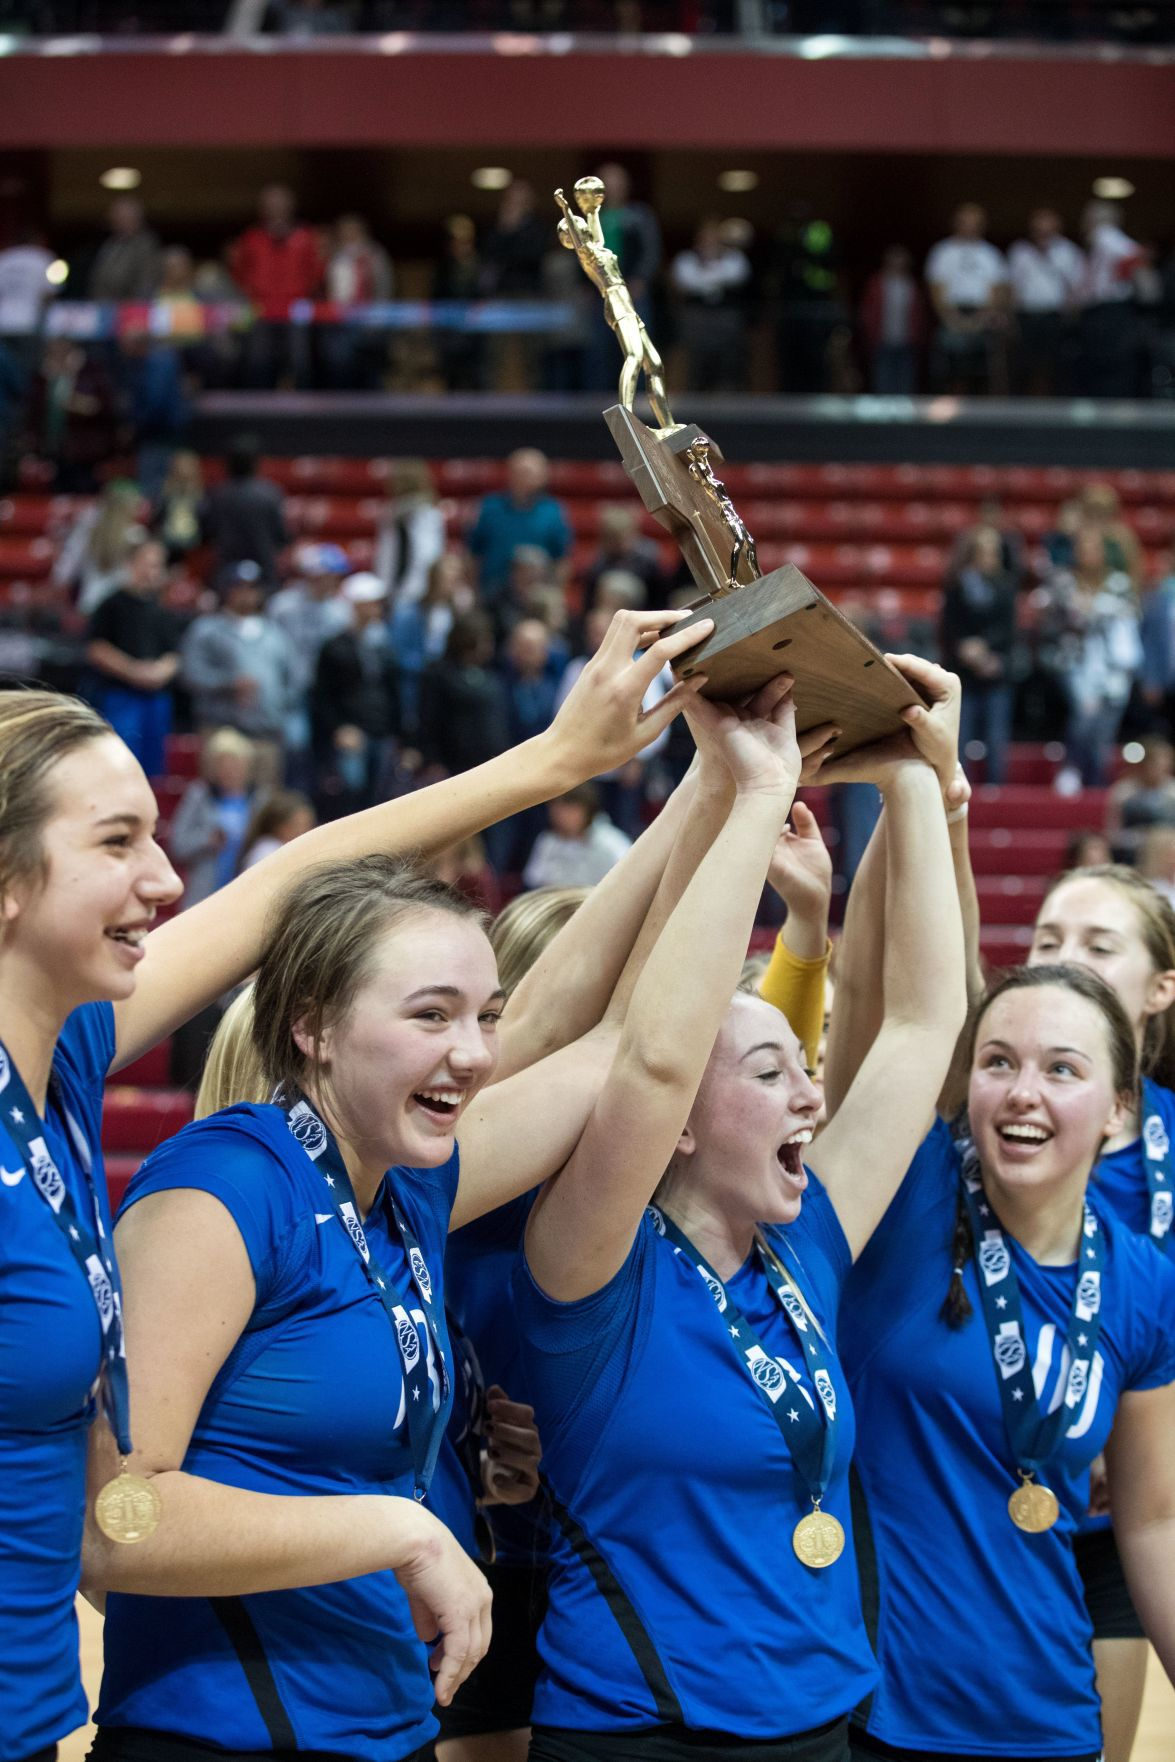 Wahoo bests Neumann as the best in Class C to win All-Sports Award